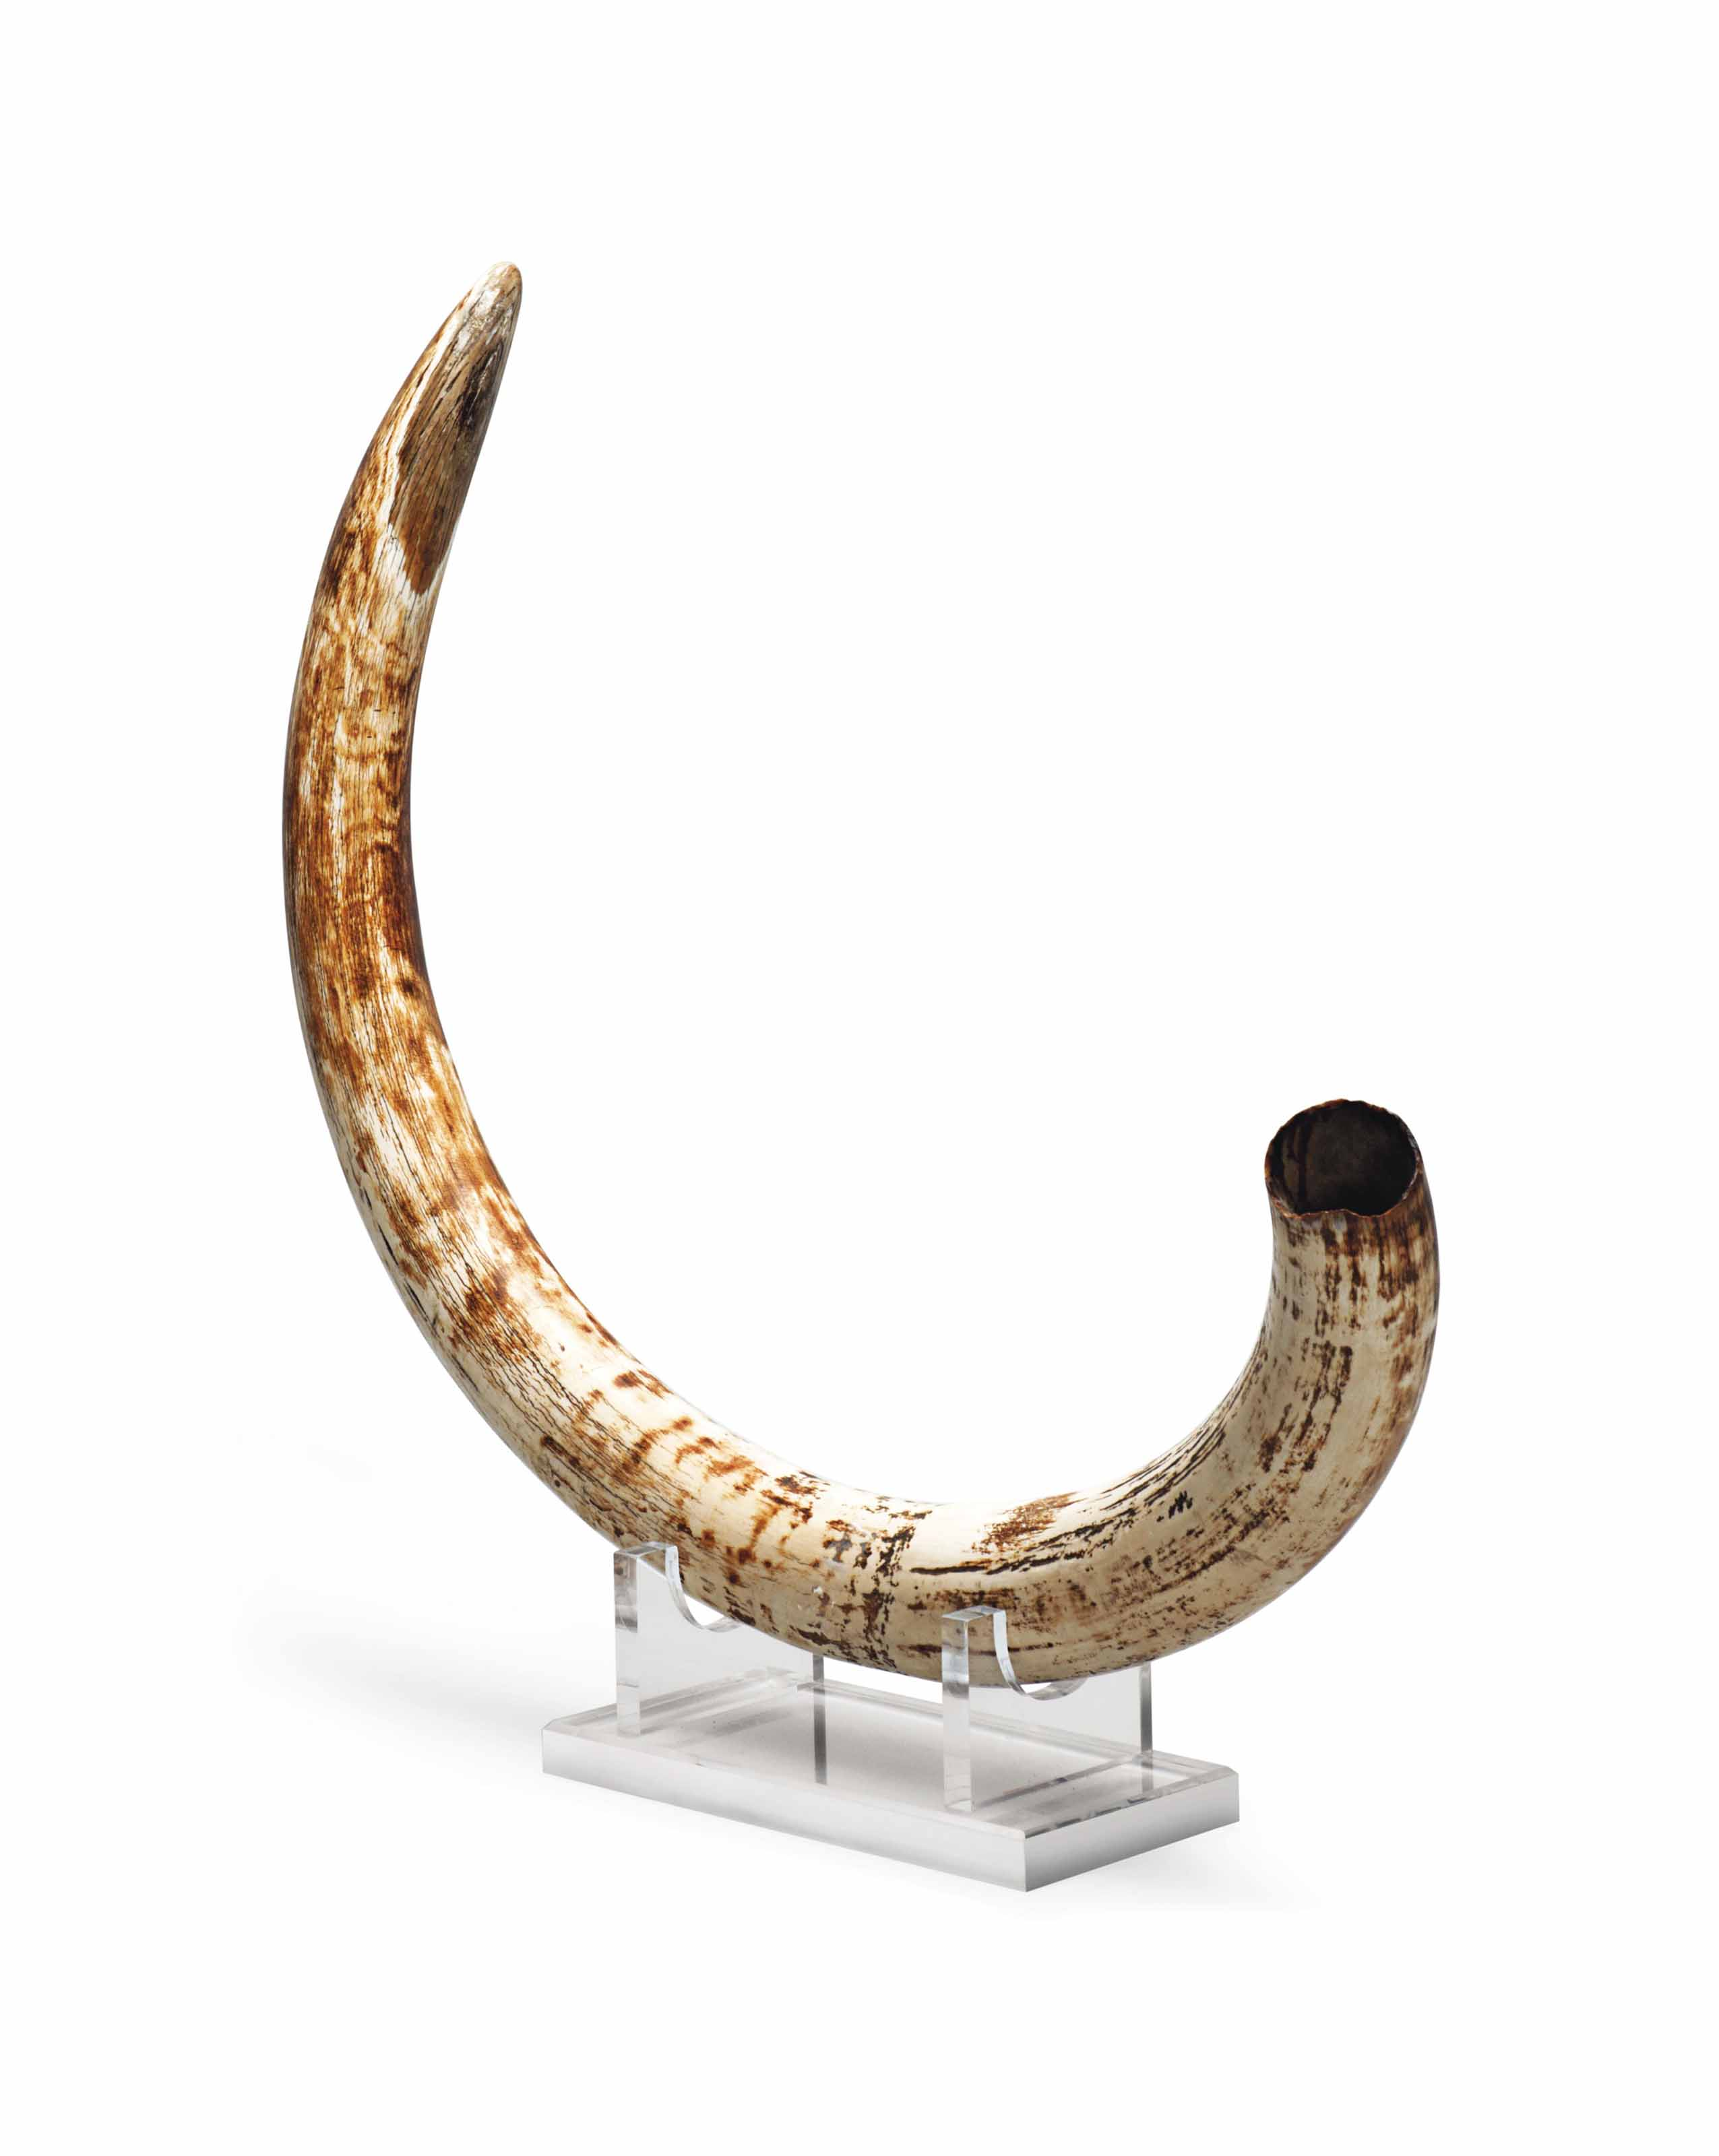 A DOUBLE-CURVED WOOOLY MAMMOTH